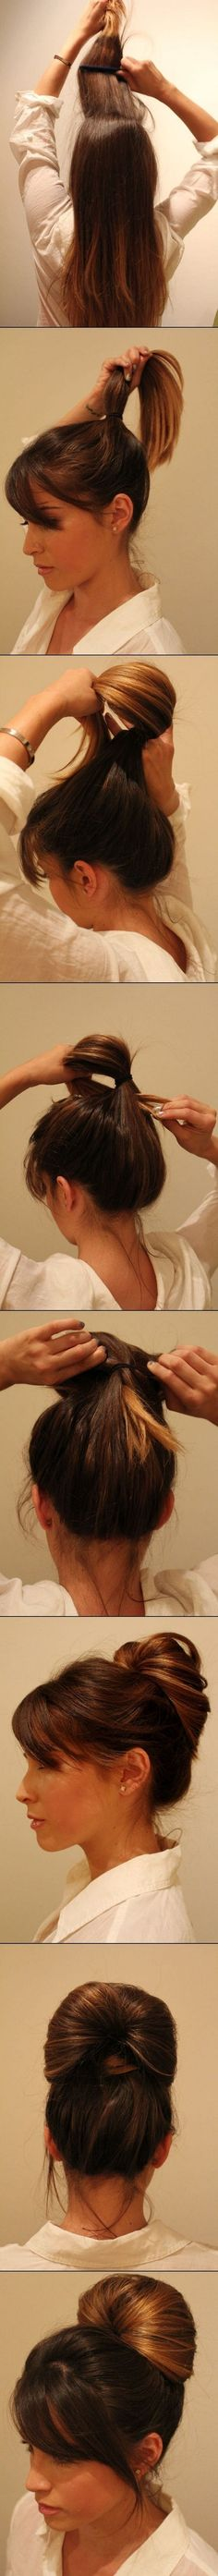 25 Lazy Girl Hair Hacks - An easy hair updo that doesn't even require bobby pins.